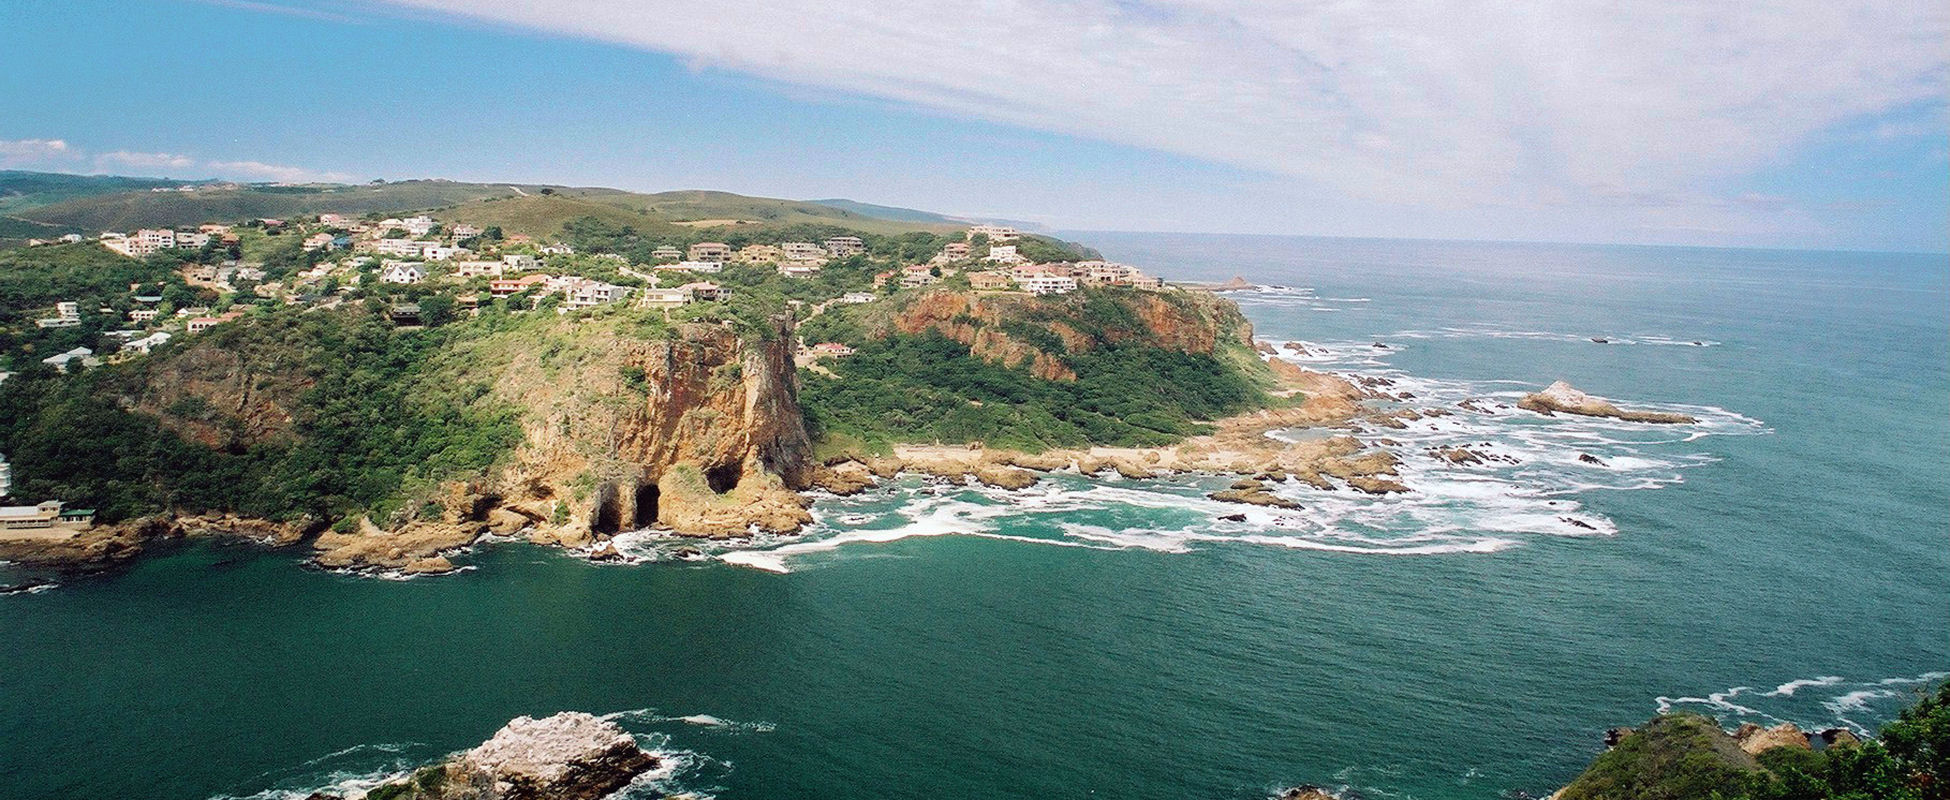 Online dating garden route tours